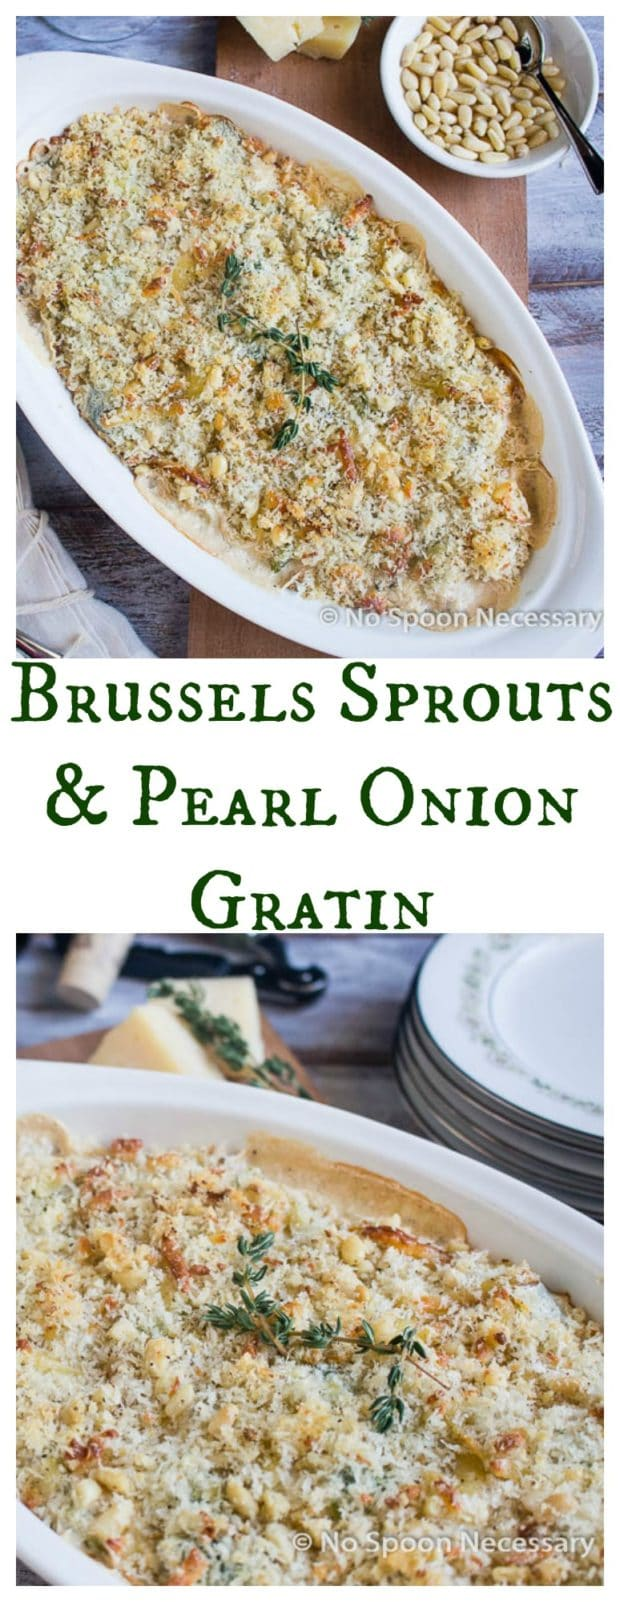 Brussels Sprouts & Pearl Onion Gratin